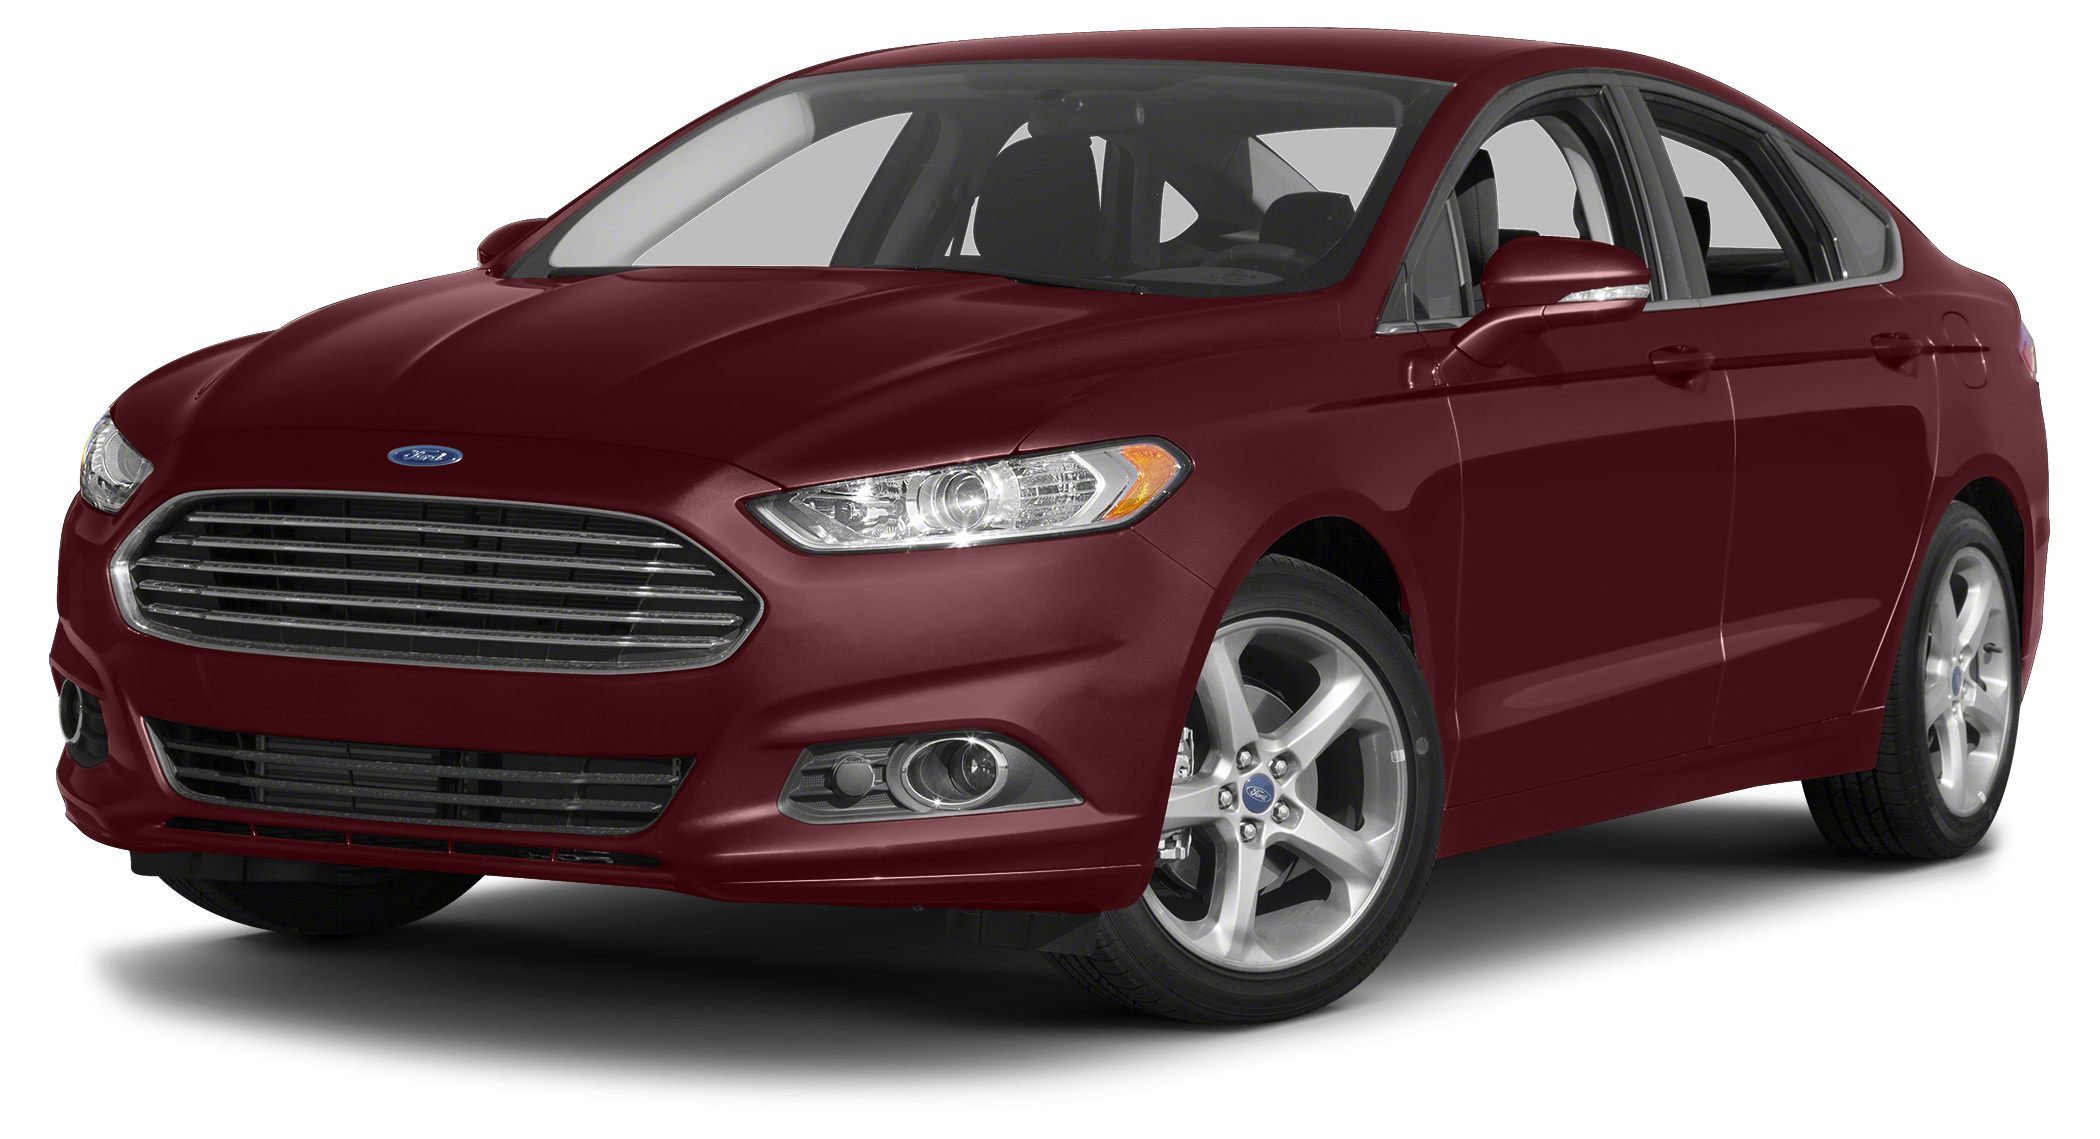 2013 Ford Fusion Titanium Ford Certified Excellent Condition PRICED TO MOVE 1400 below NADA Ret